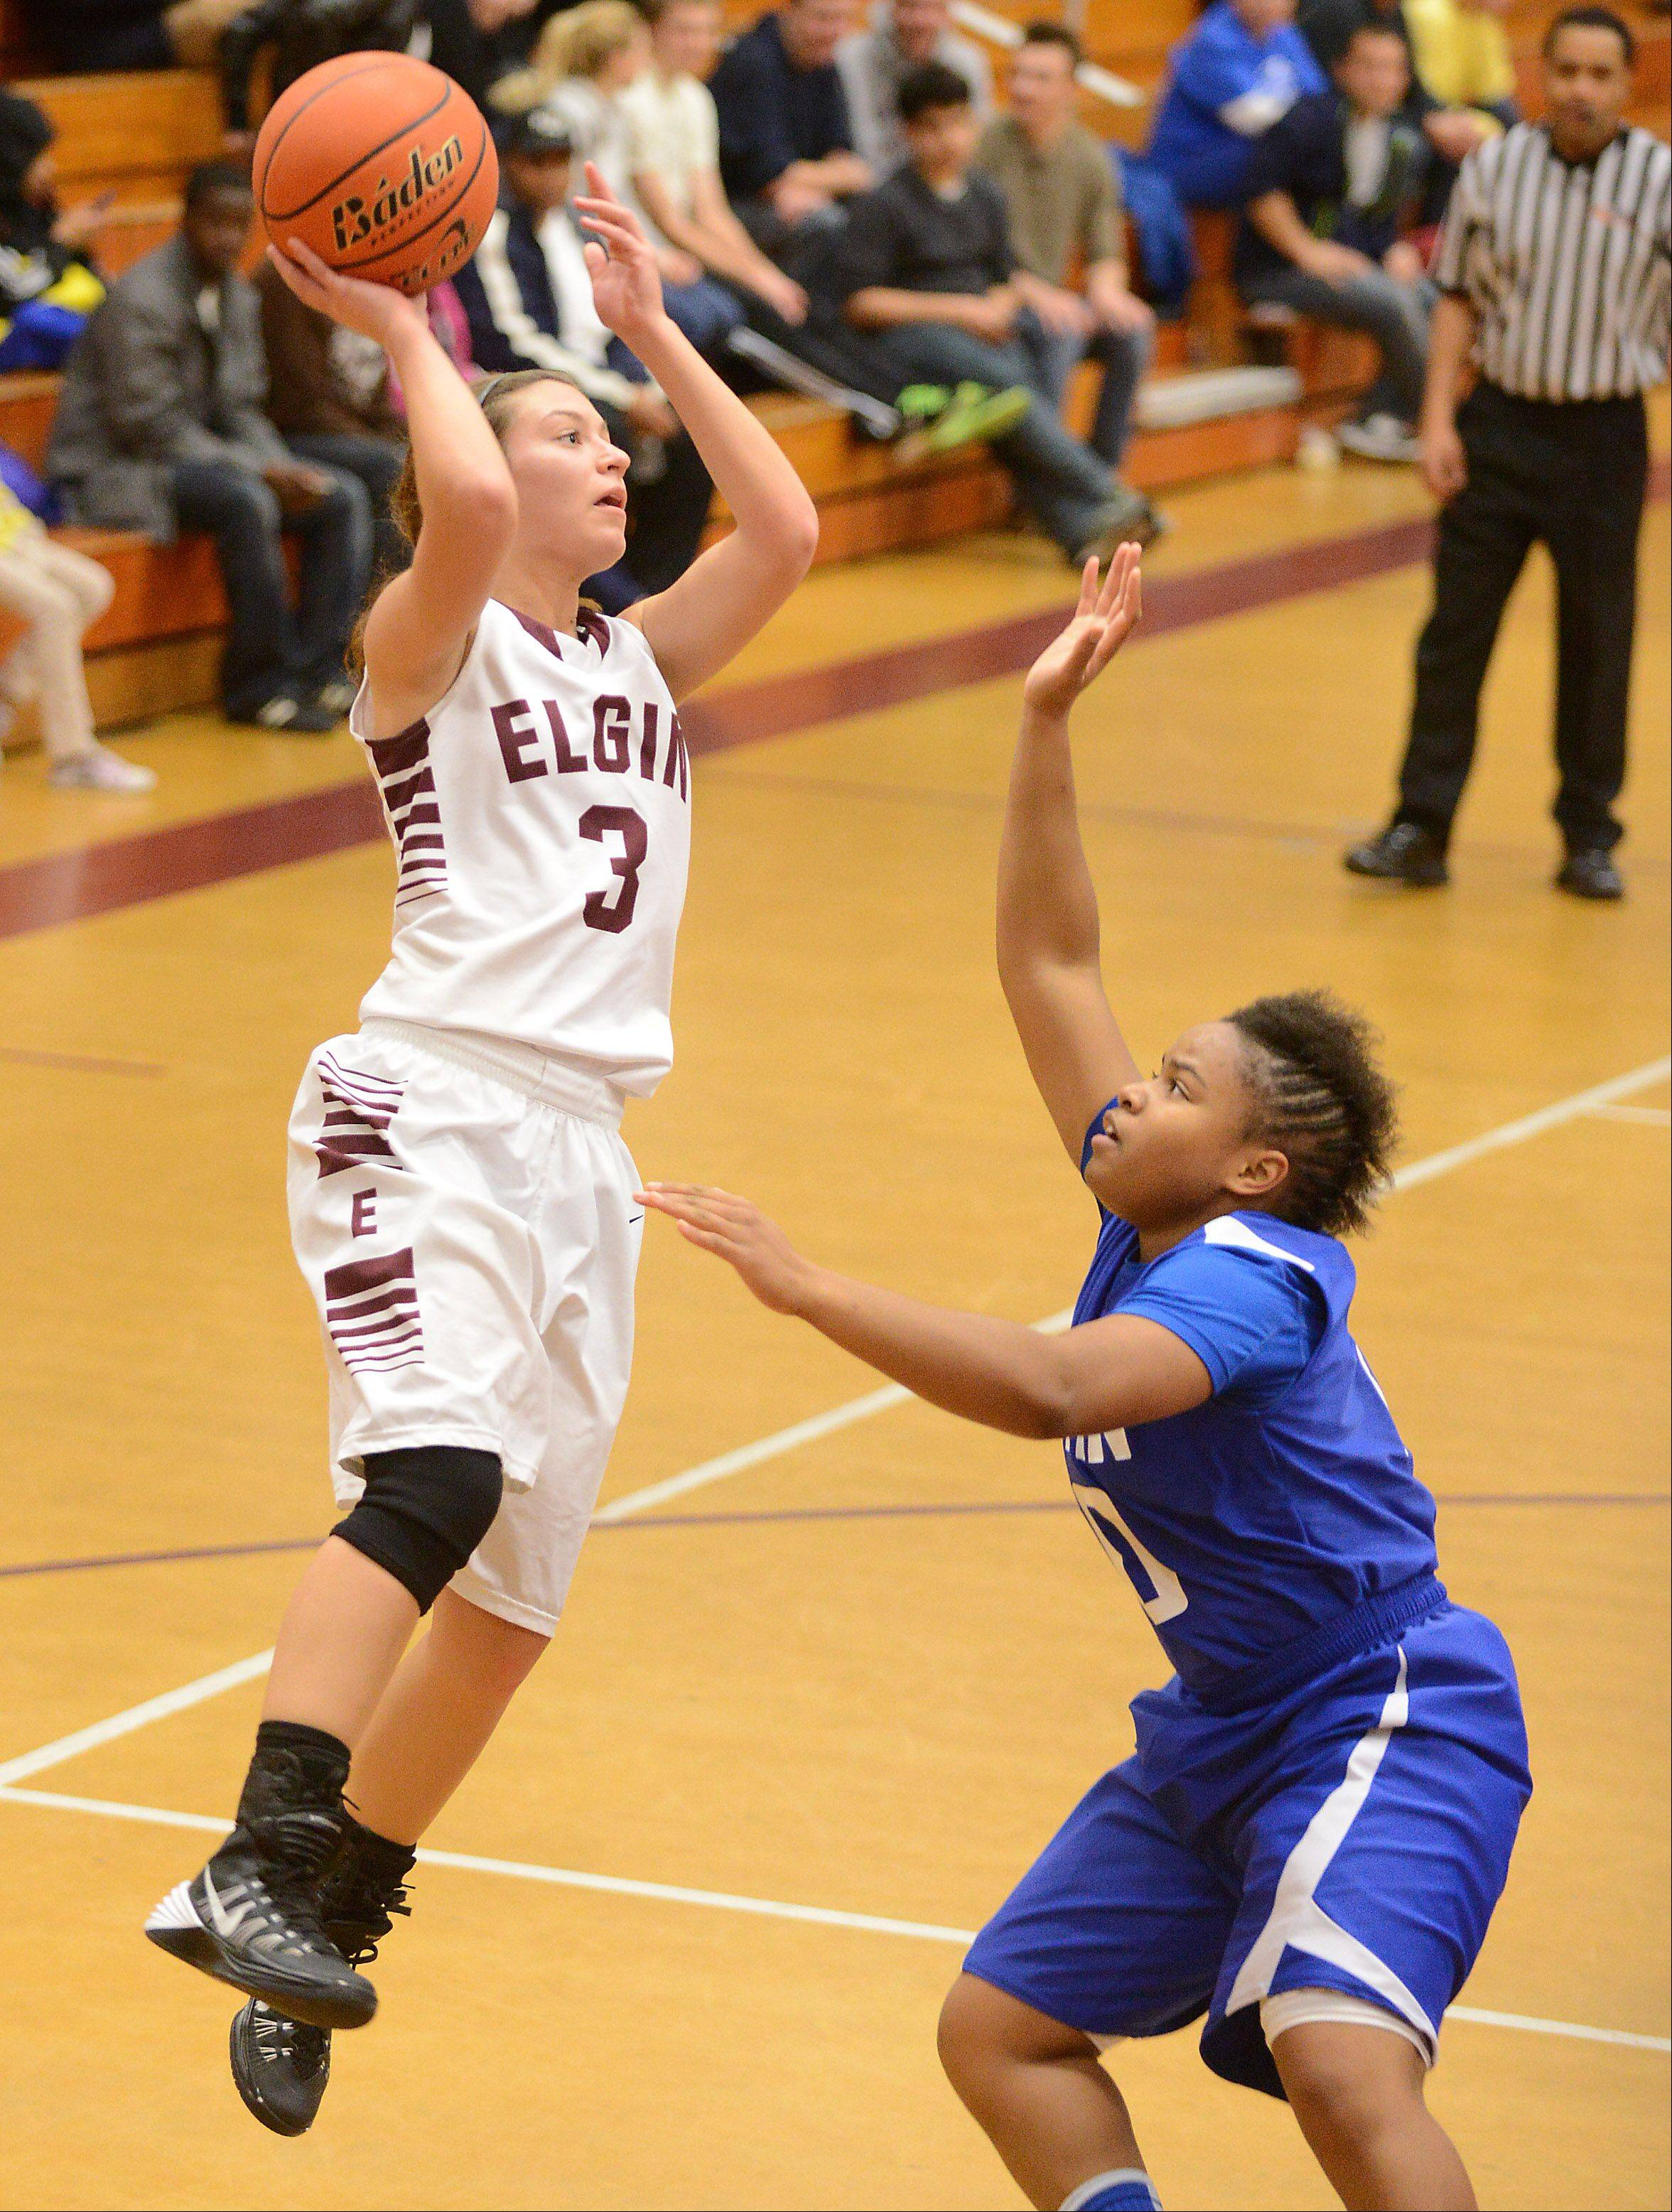 Elgin's Maggie Powers (3) shoots over Larkin's Quixmia Washington (20) during Friday's game at Elgin.